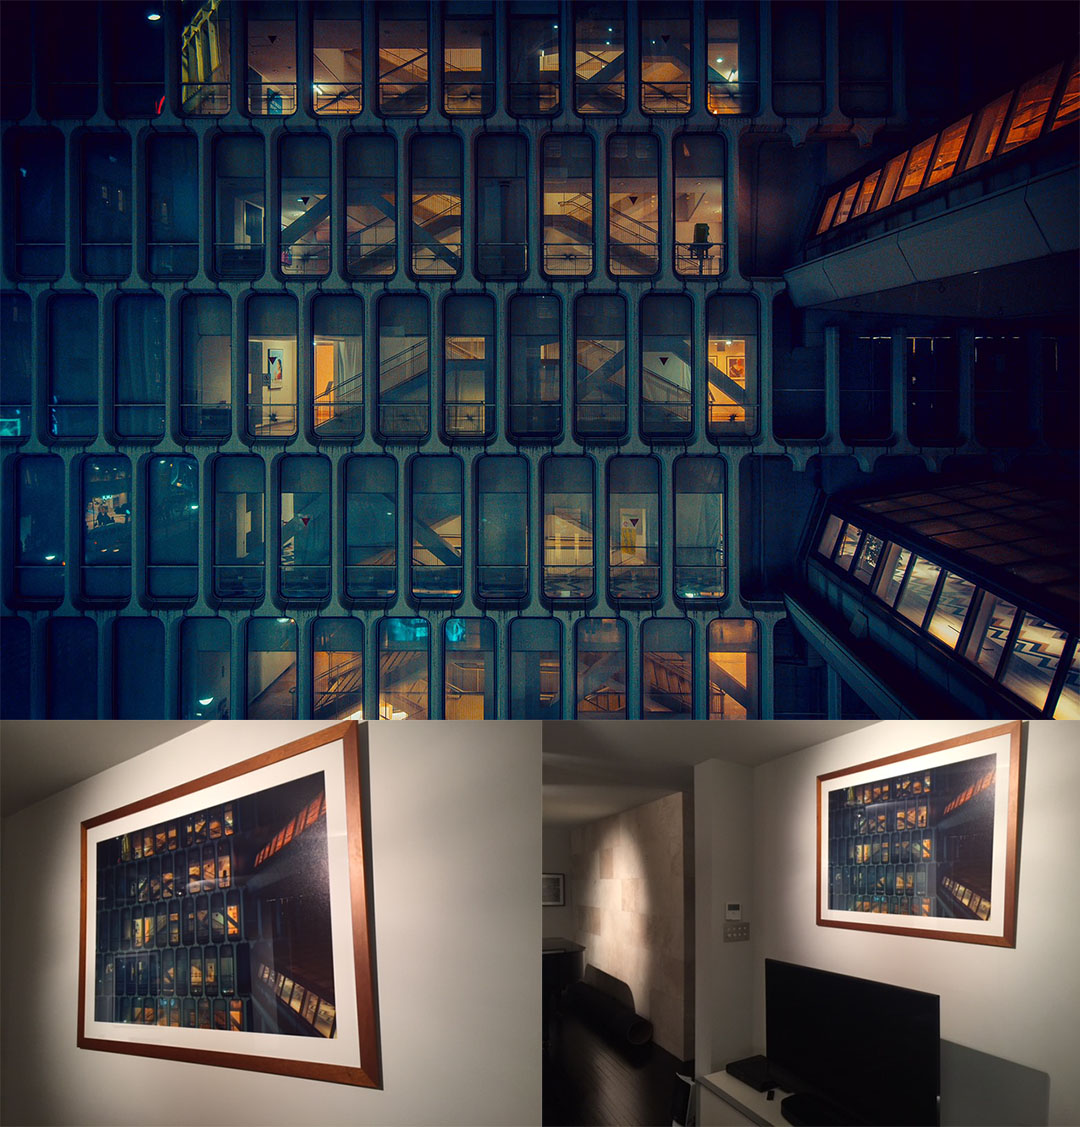 DERIVE Art Prints - Own a piece of the world's most captivating cities.Fine Art Prints Exploring Architecture and Places.